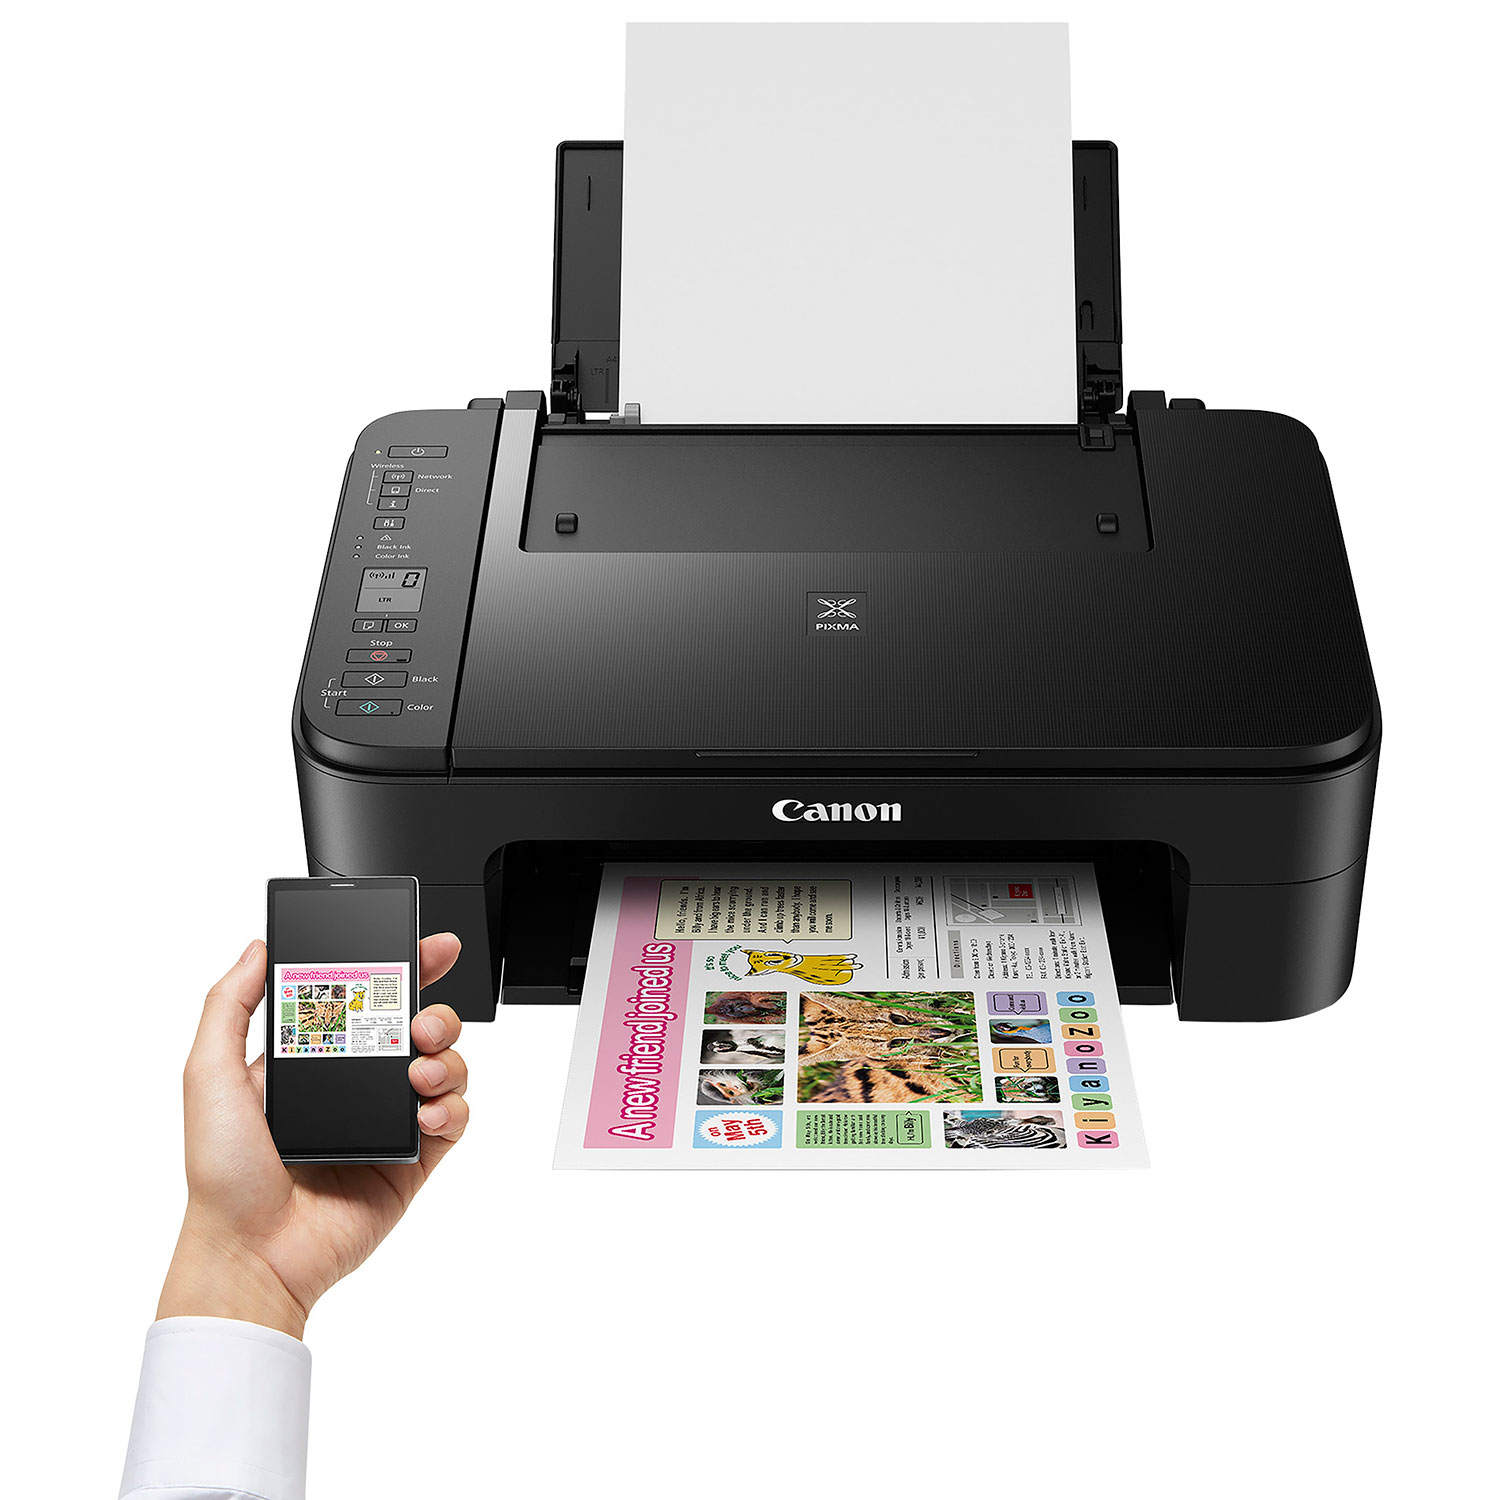 printer buying guide - canon pixma mobile printing